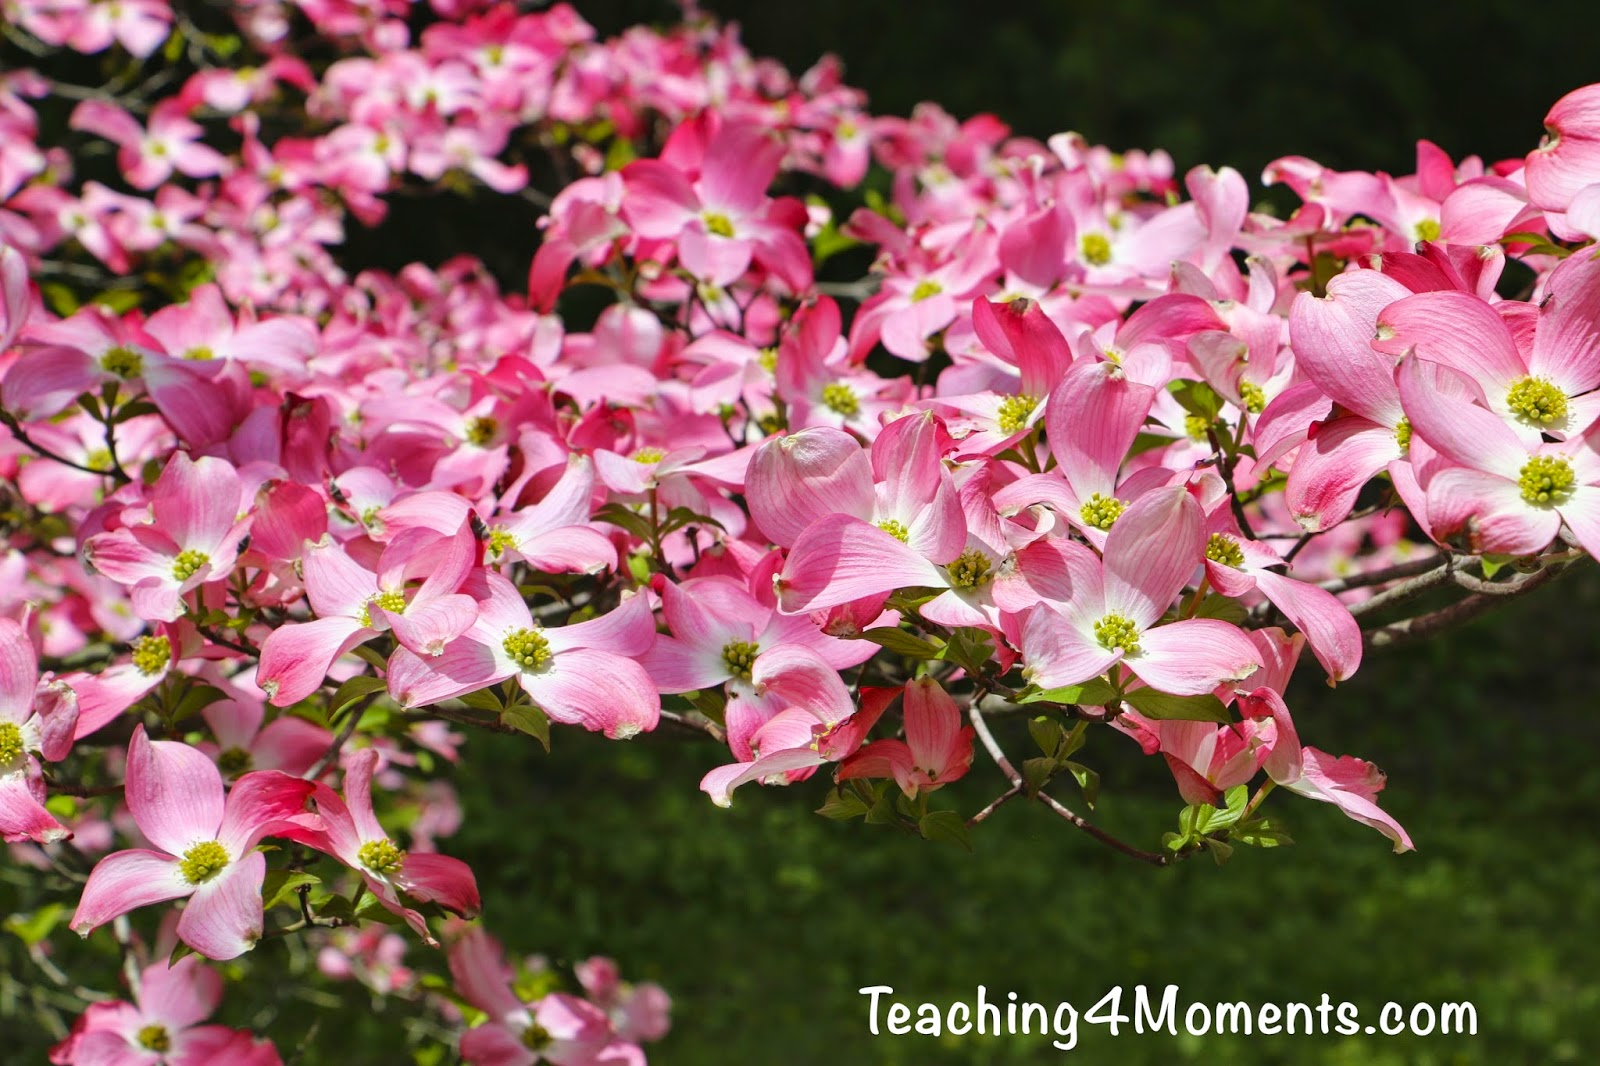 Teaching4moments Plant Of The Week 1 The Dogwood Tree